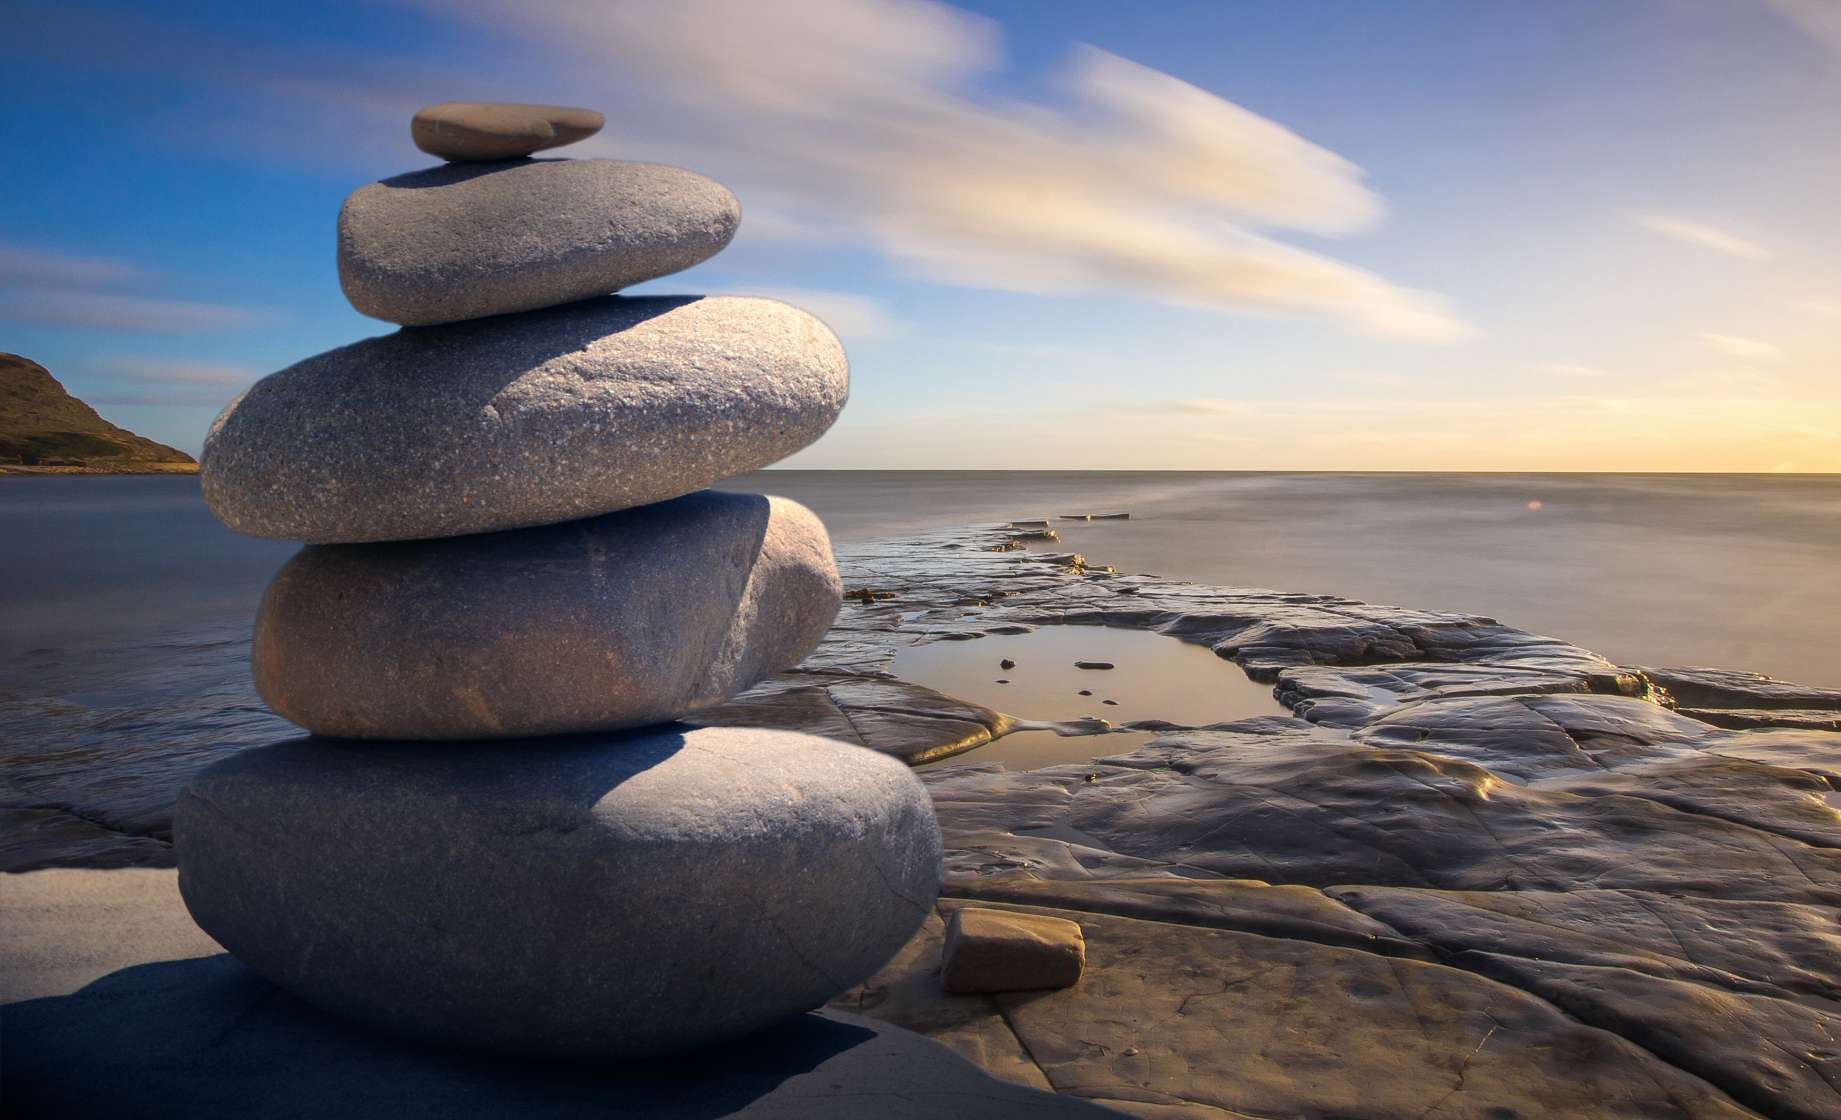 stack or rocks on a beach shore